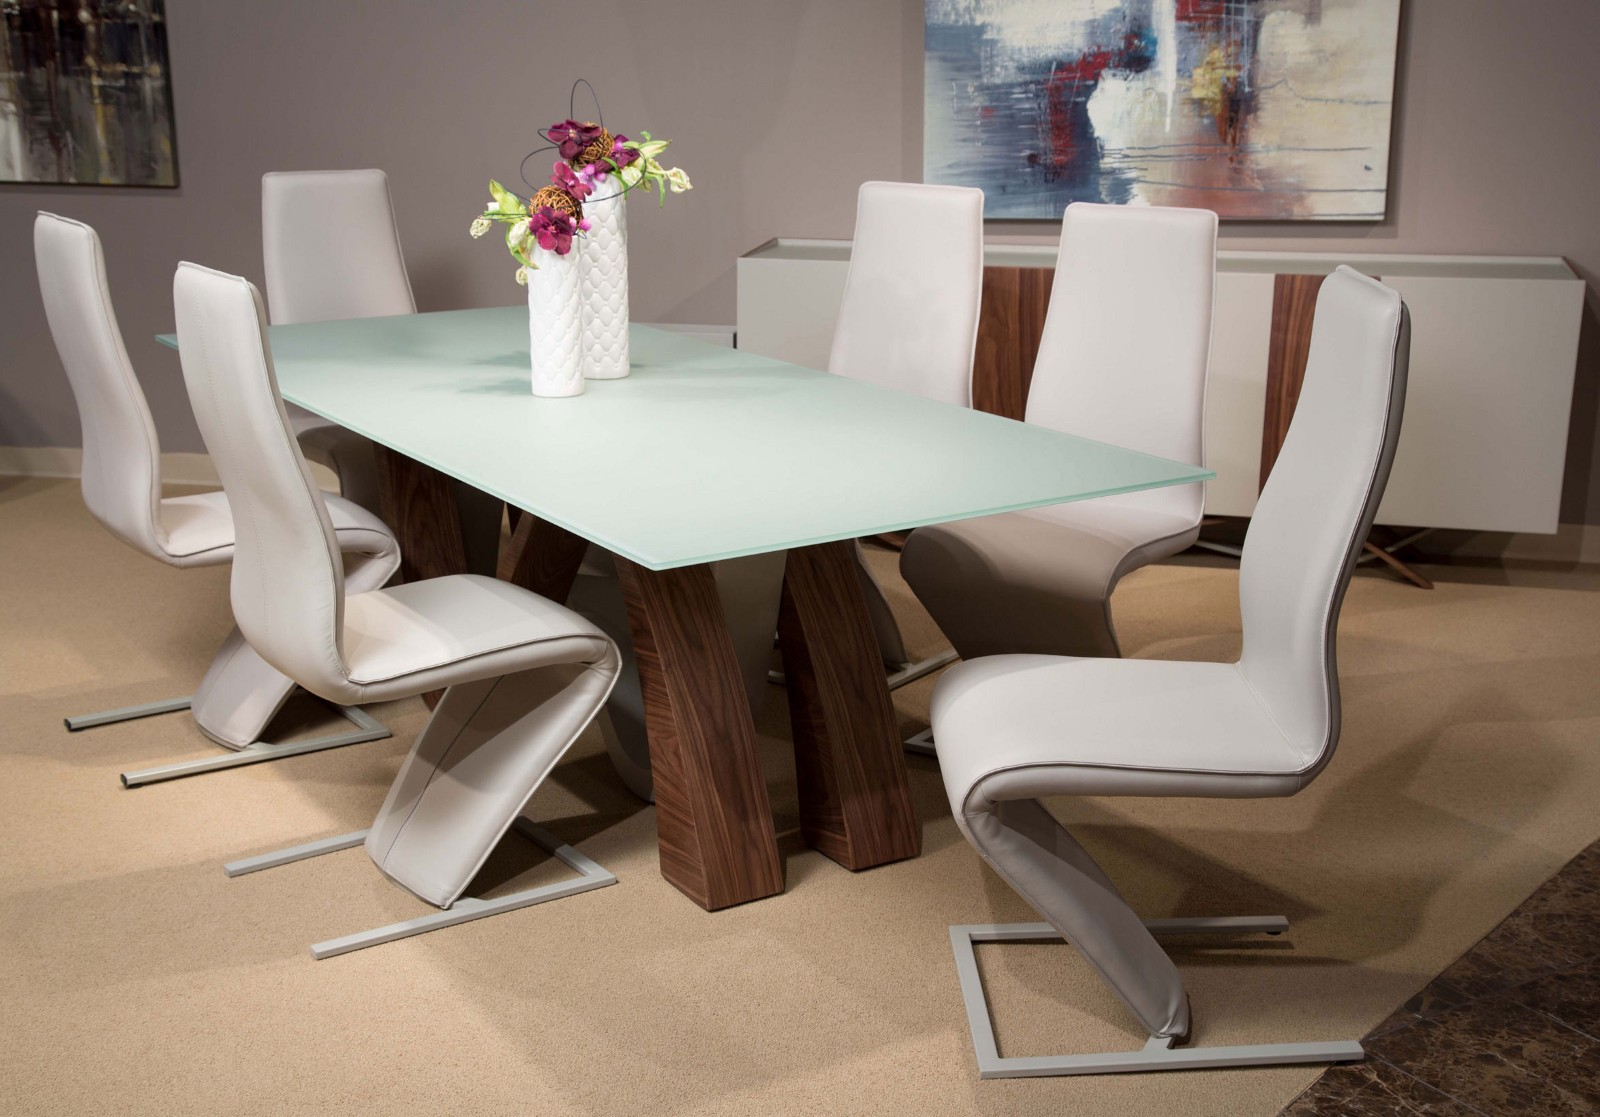 Choosing A Dining Table Set Tips For Practicality And Design - 28 wide dining table